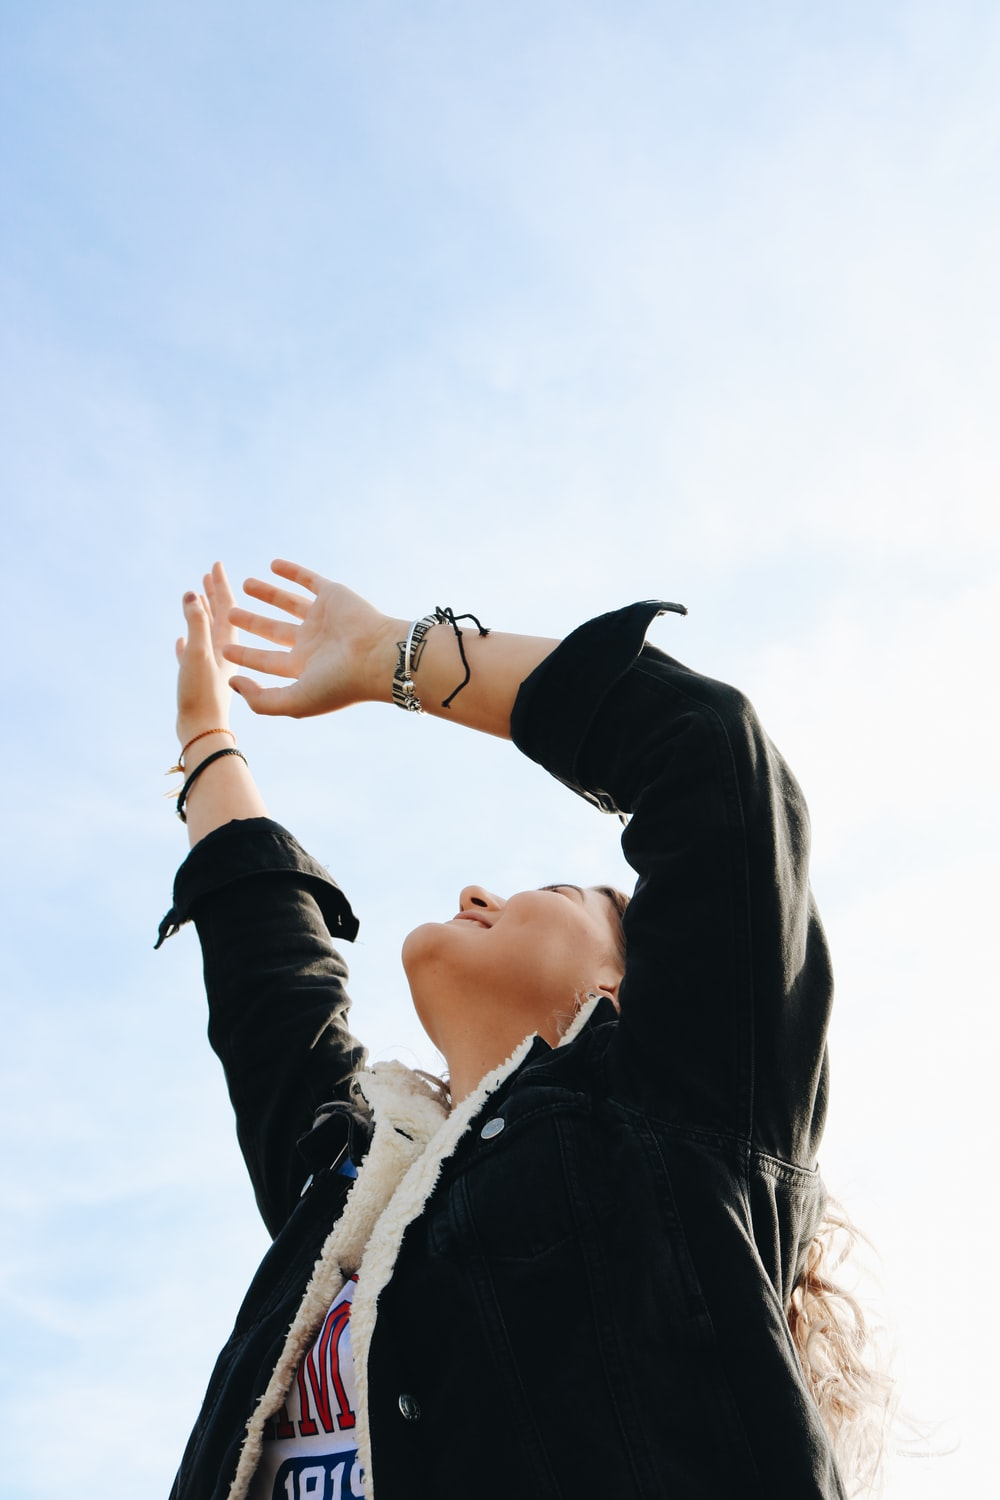 smiling woman wearing black and white jacket raising both hands while looking up under white and blue sky during daytime